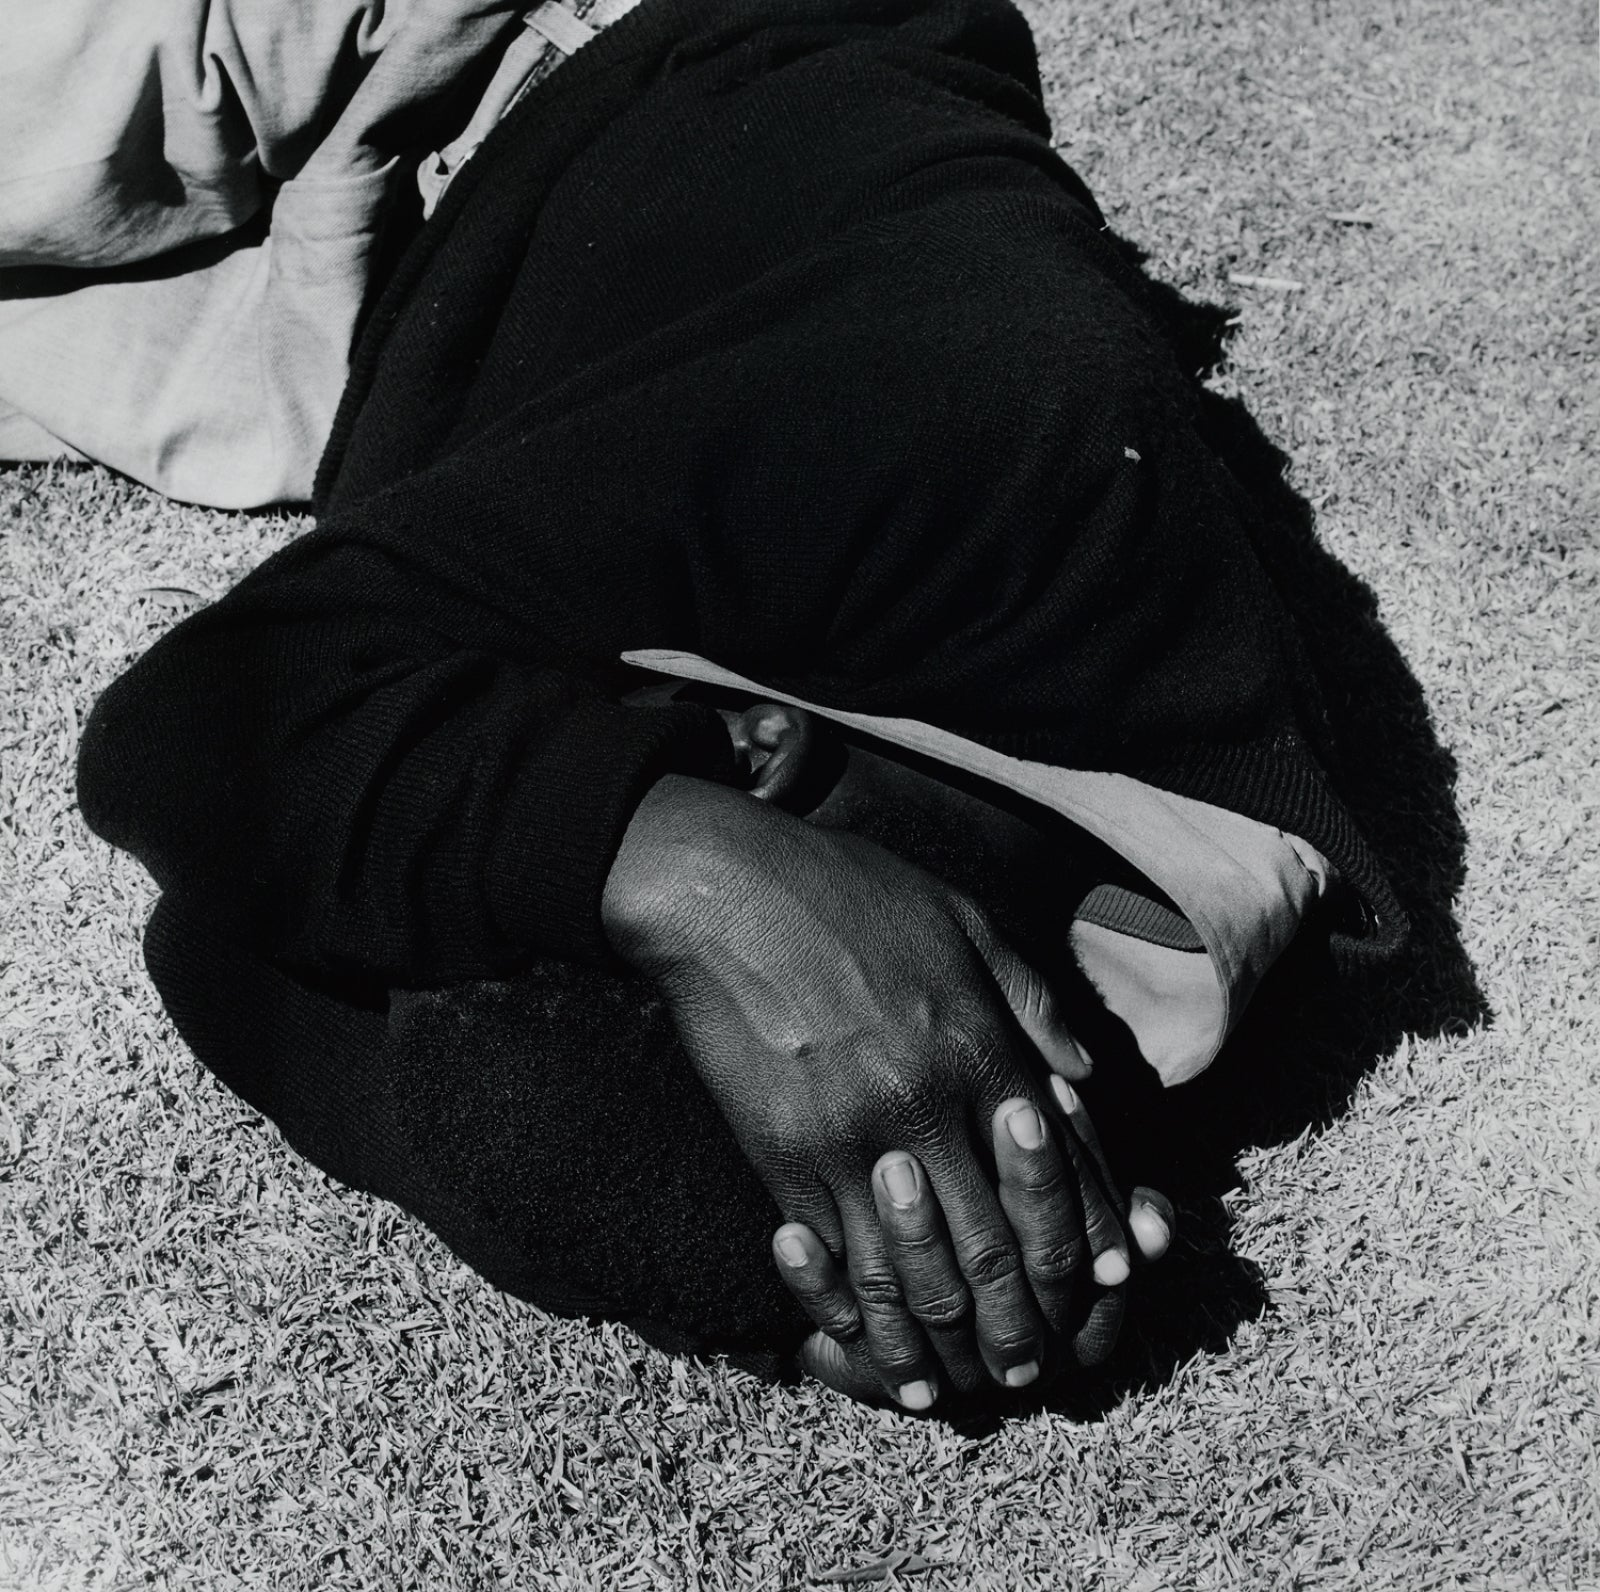 Tate Man Sleeping Joubert Park, Johannesburg David Goldblatt 1975